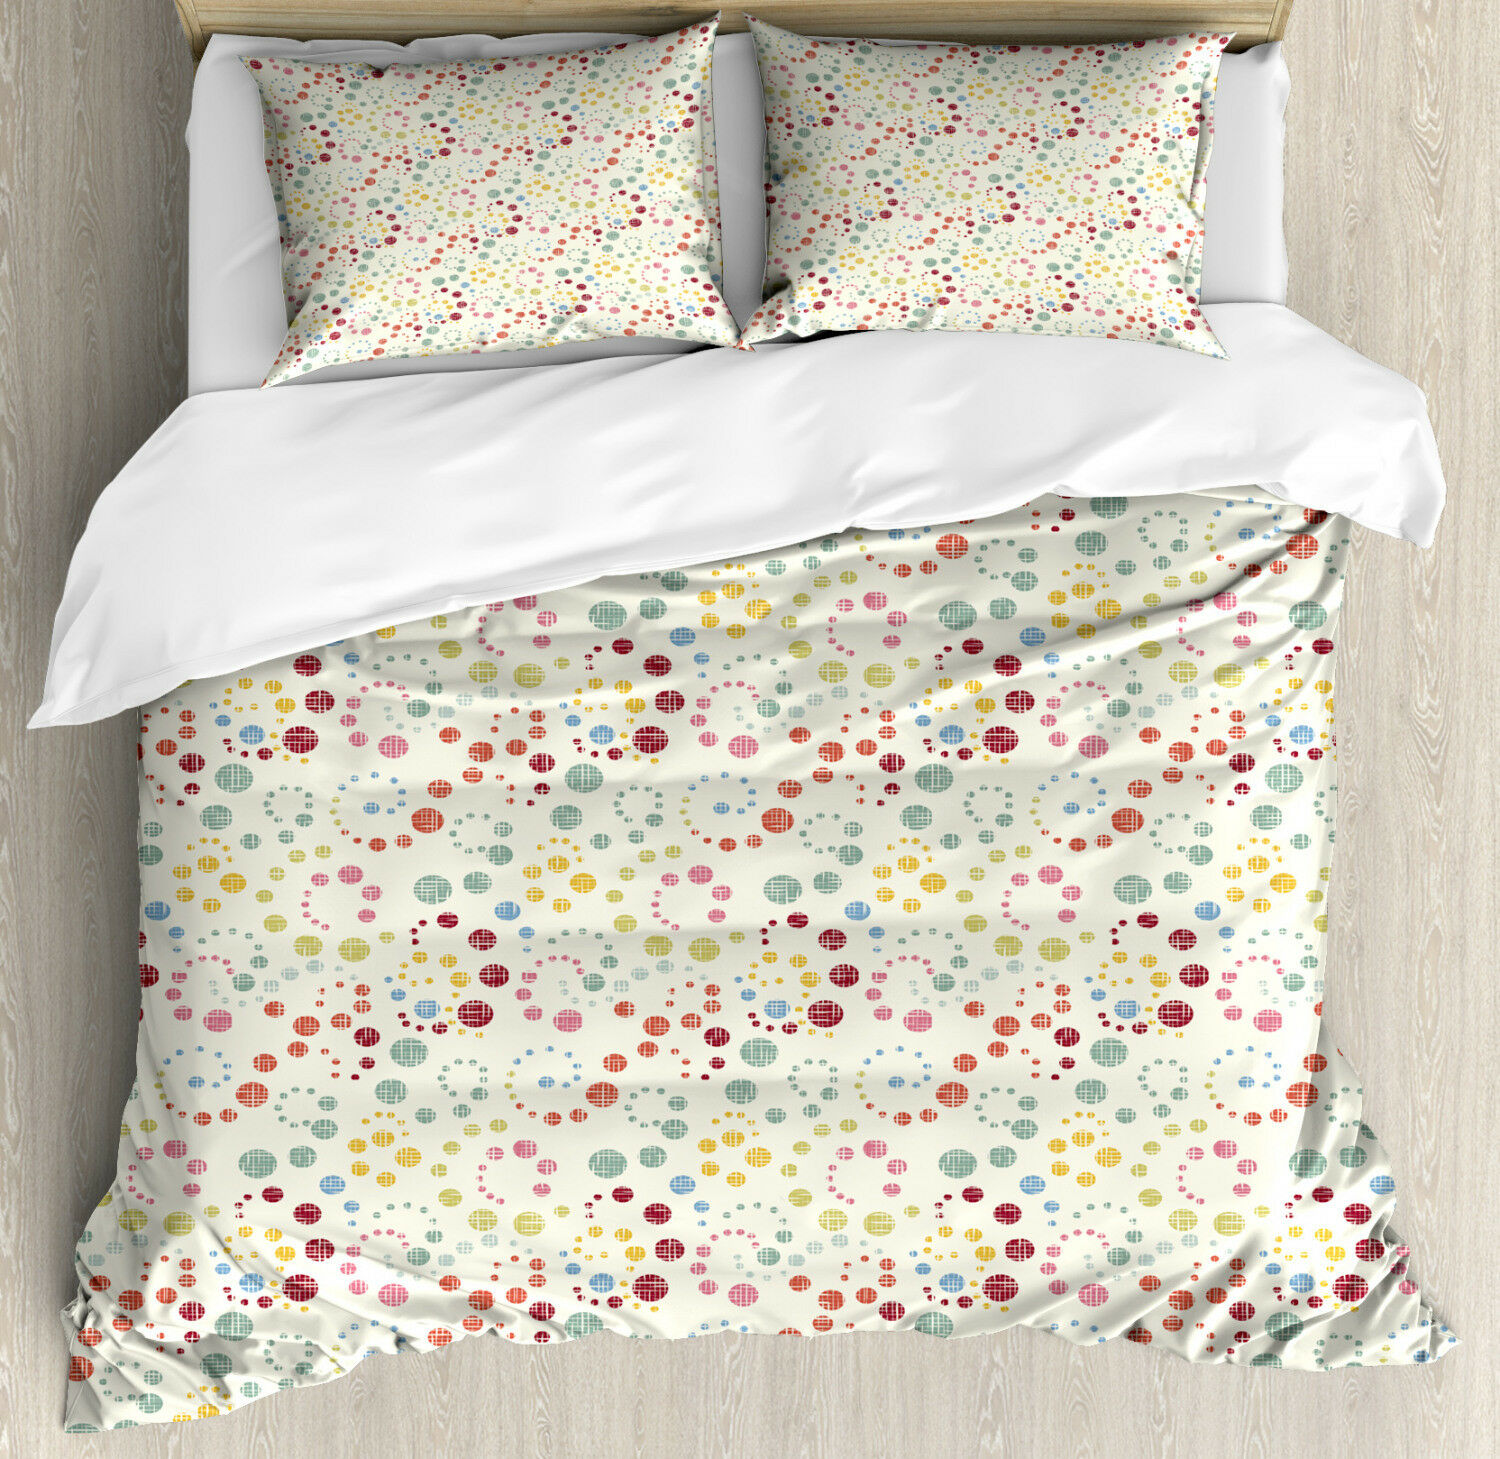 Abstract Duvet Cover Set with Pillow Shams Dot Swirls Retro Look Print